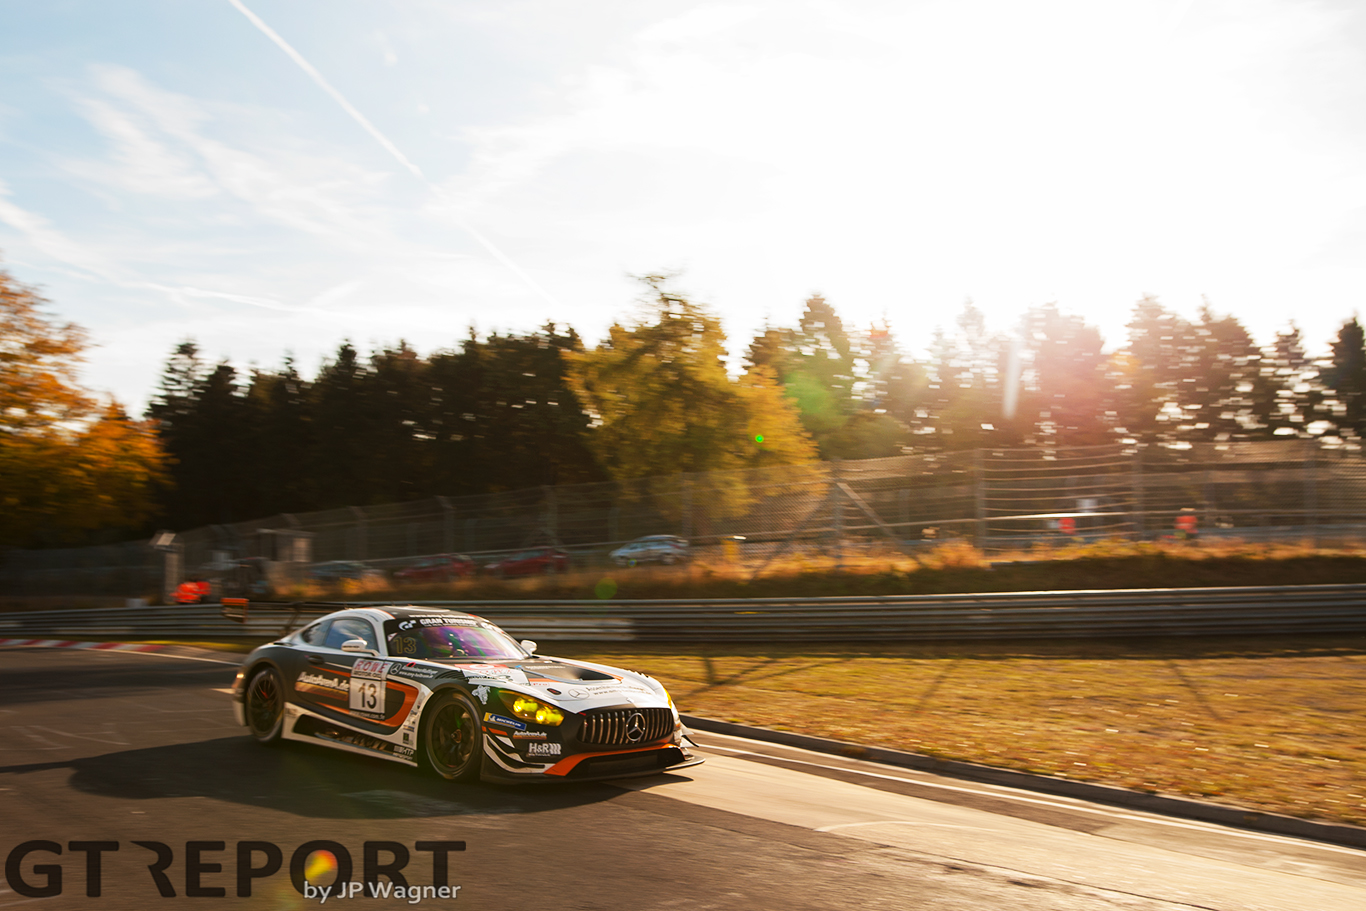 VLN8 race report: Brighter days